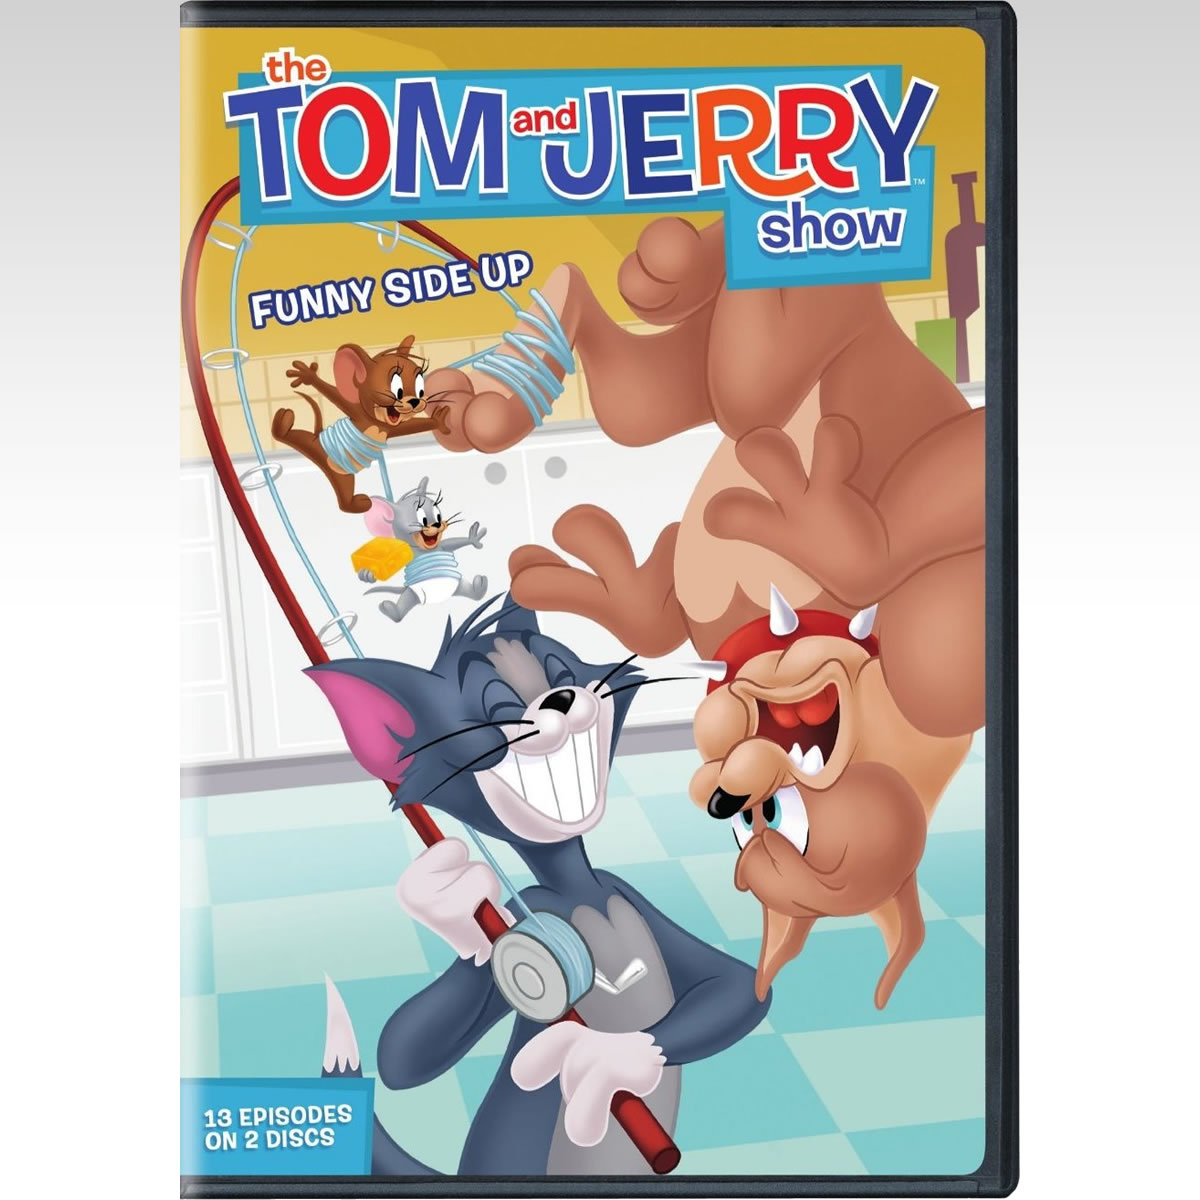 TOM AND JERRY SHOW SEASON 1 PART 2: FUNNY SIDE UP - TOM AND JERRY SHOW �������� 1 ����� 2�: � ������ ������ (DVD)